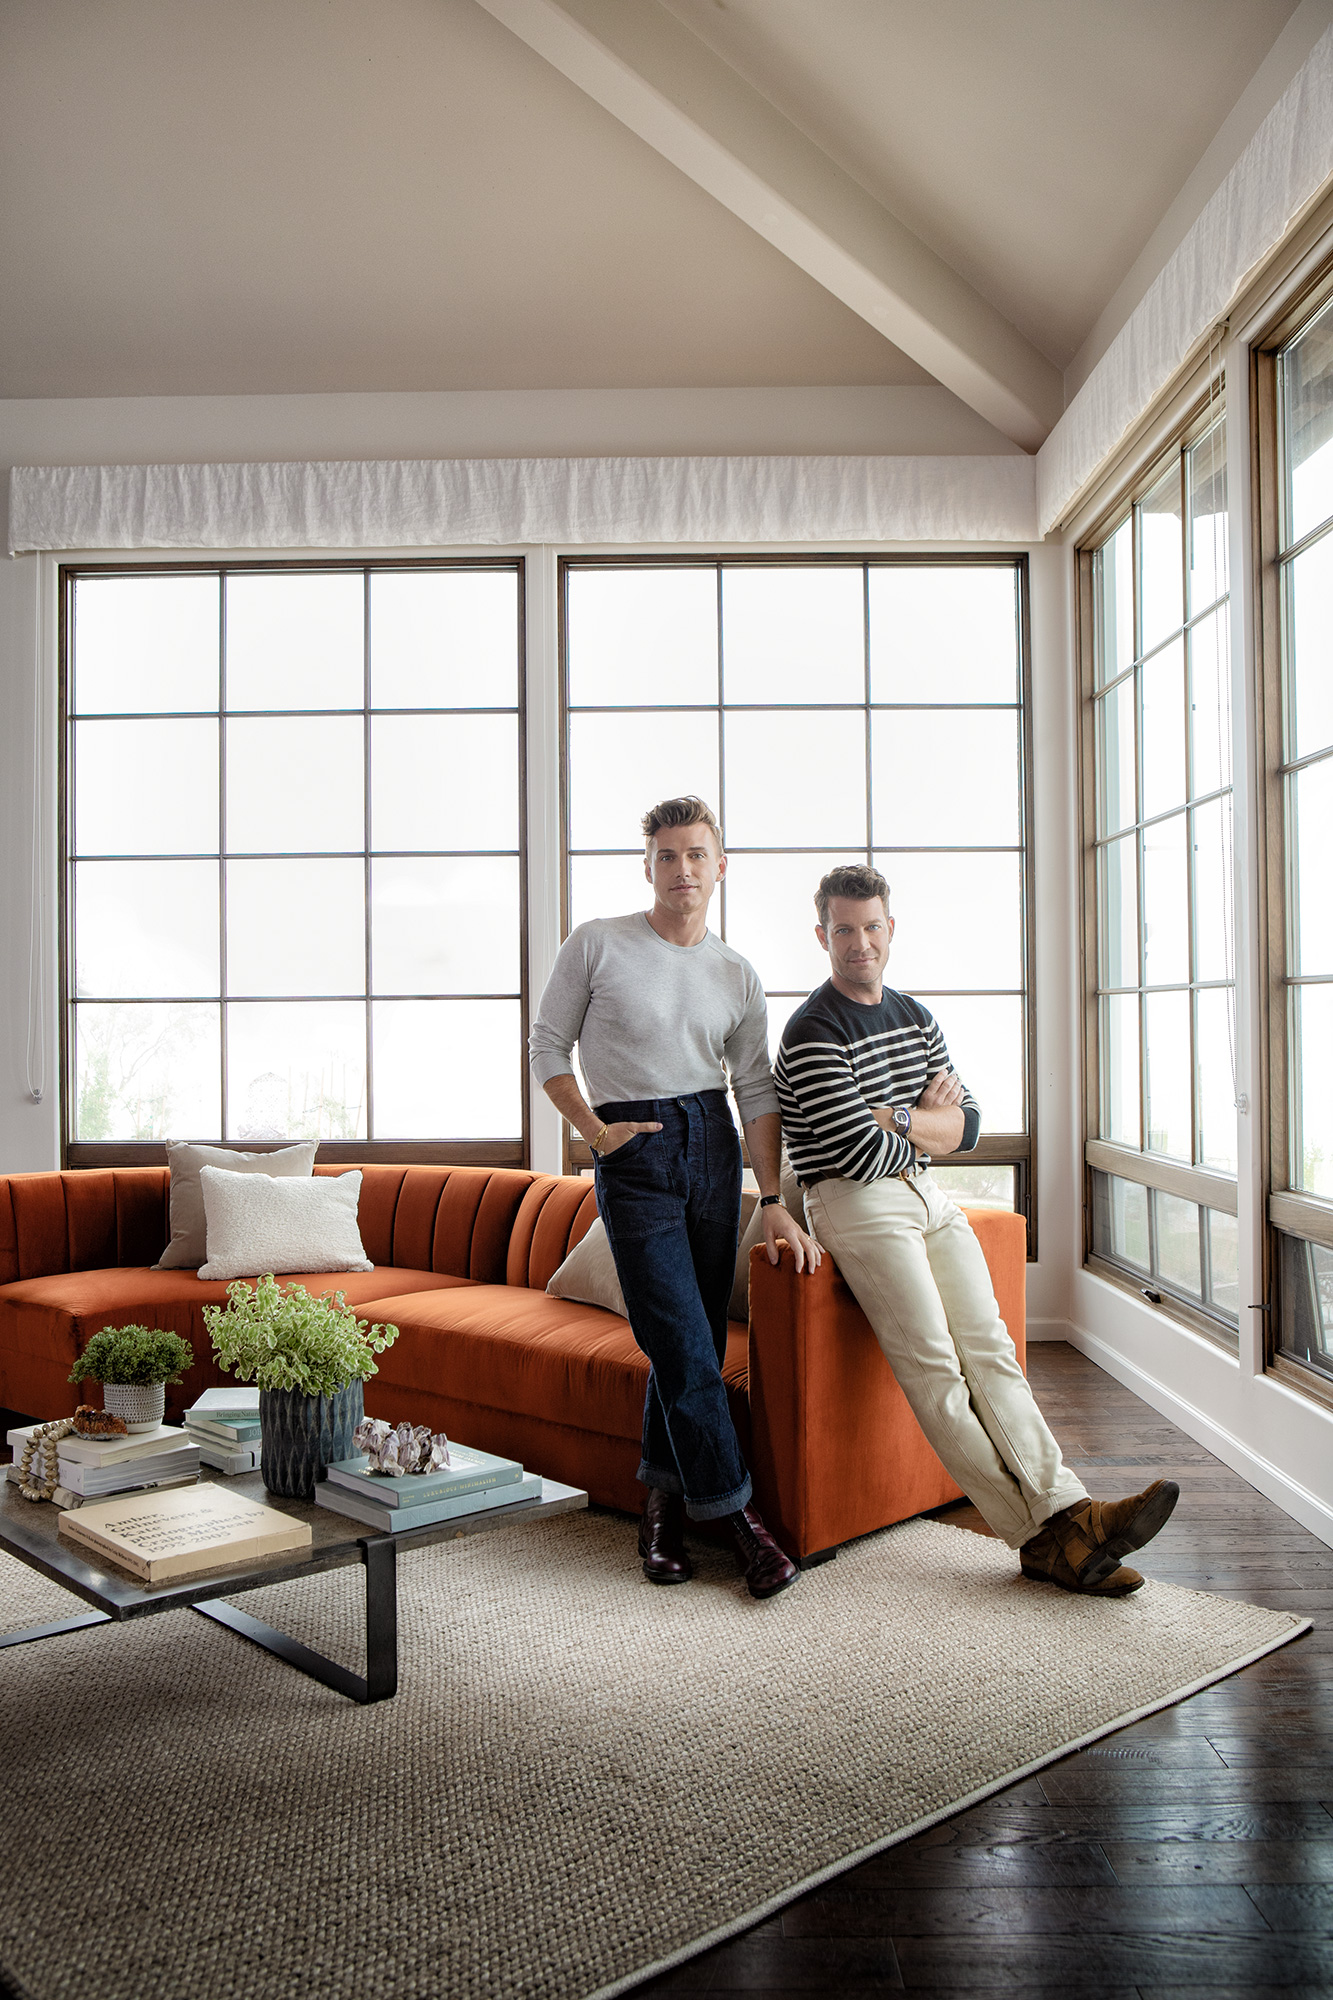 amazing crestview bengal manor end table nate berkus jeremiah brent living spaces mango wood twist accent and debut furniture line inspired their own home apothecary coffee high